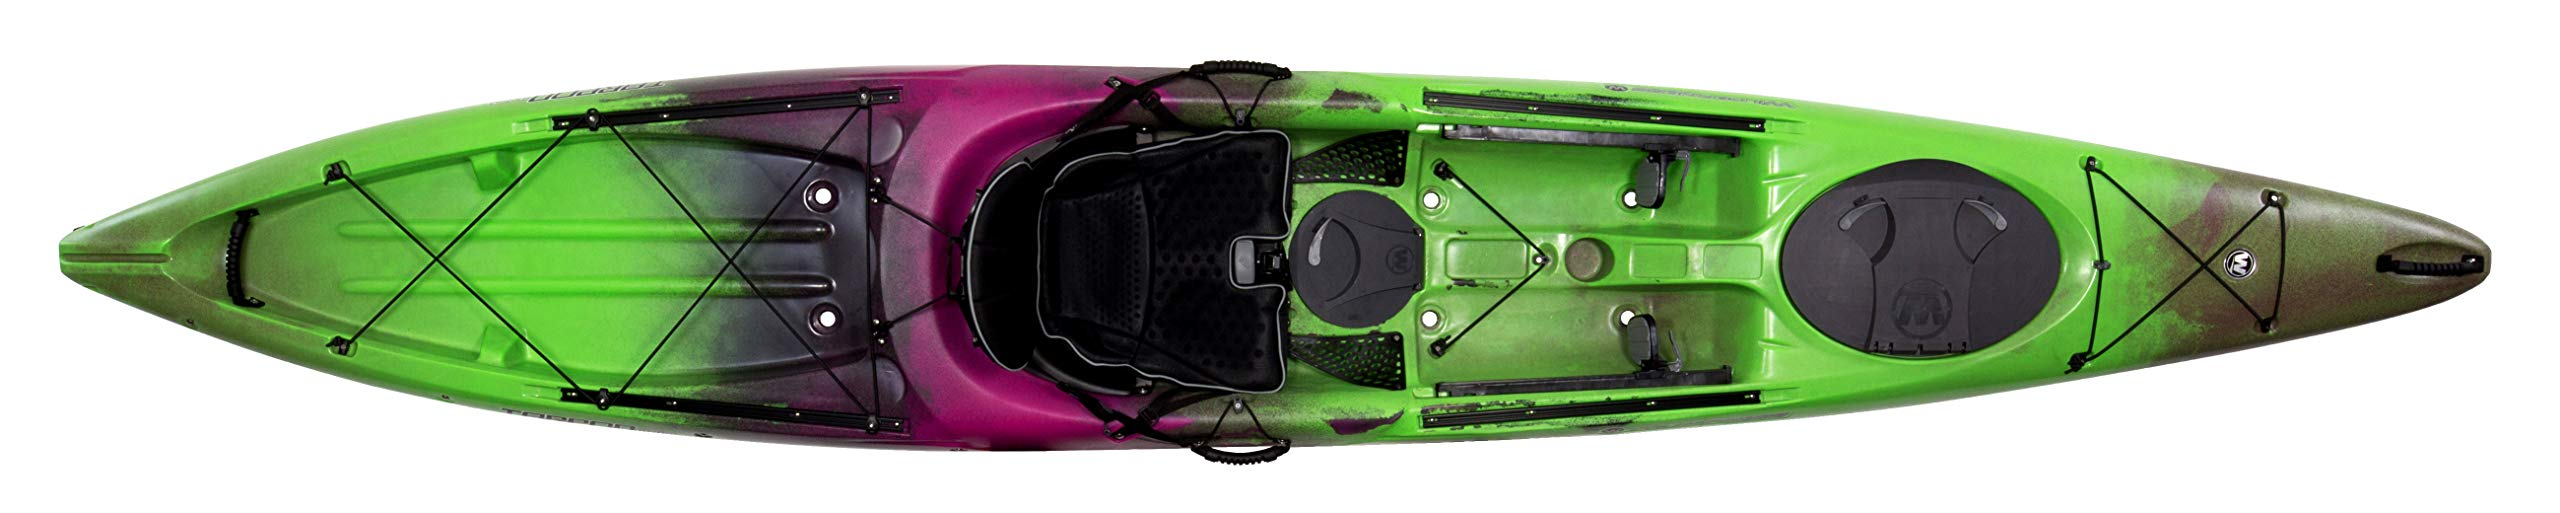 Wilderness Systems 9750405163 Tarpon 140 Kayaks, Borealis, 14' by Wilderness Systems